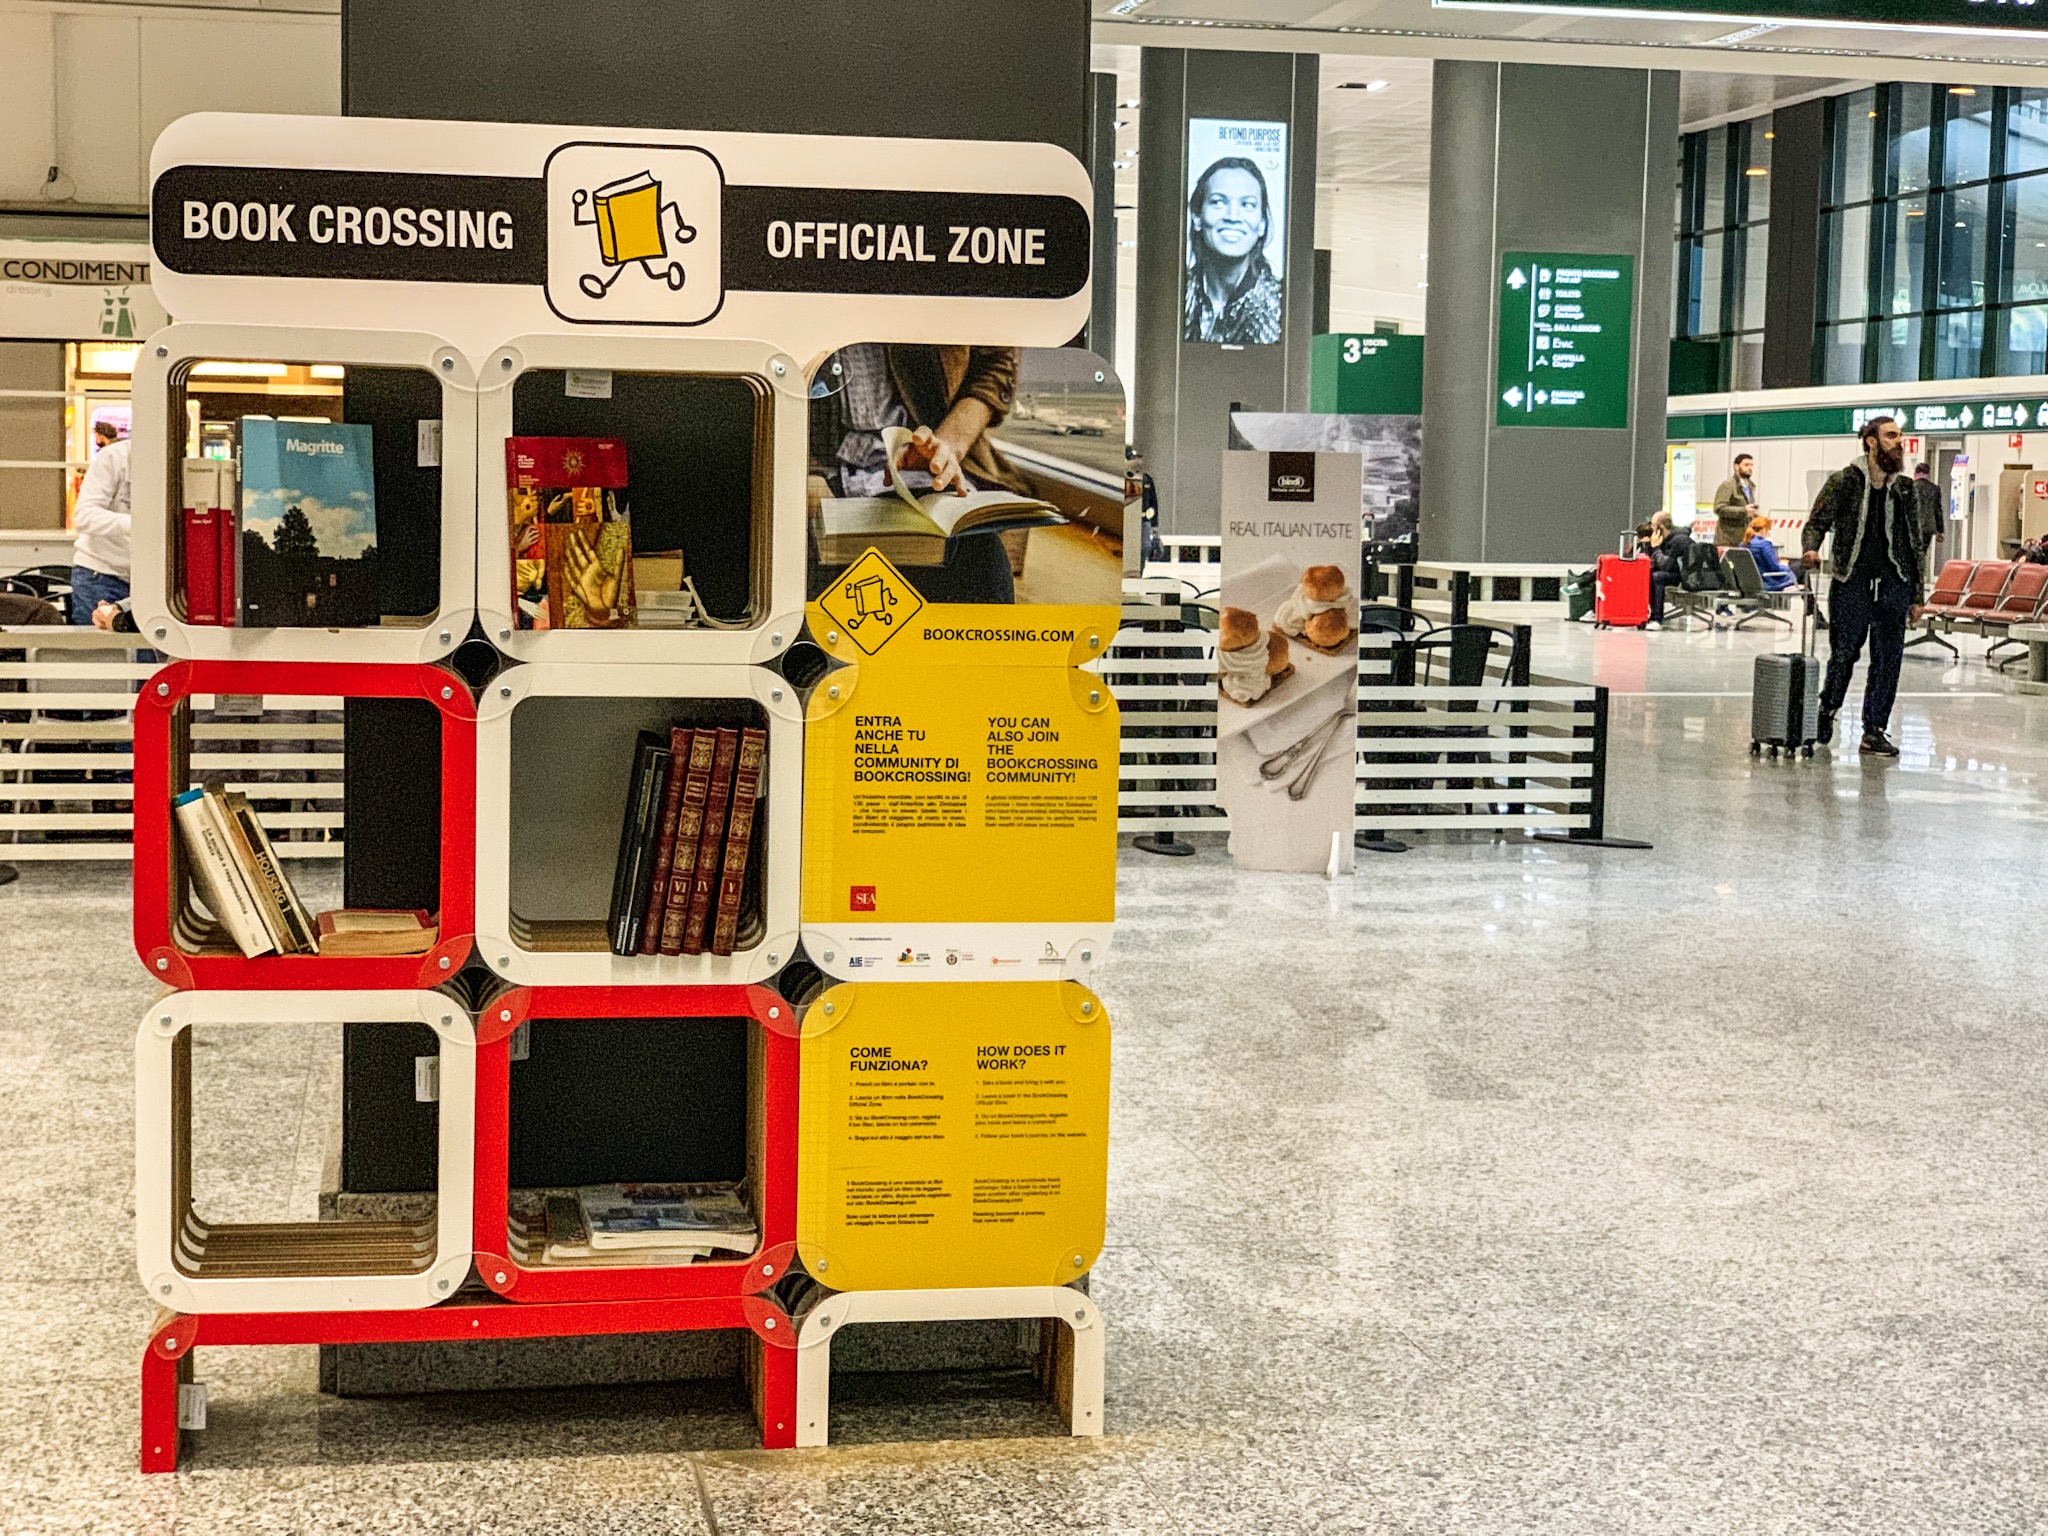 Il bookcrossing a Malpensa